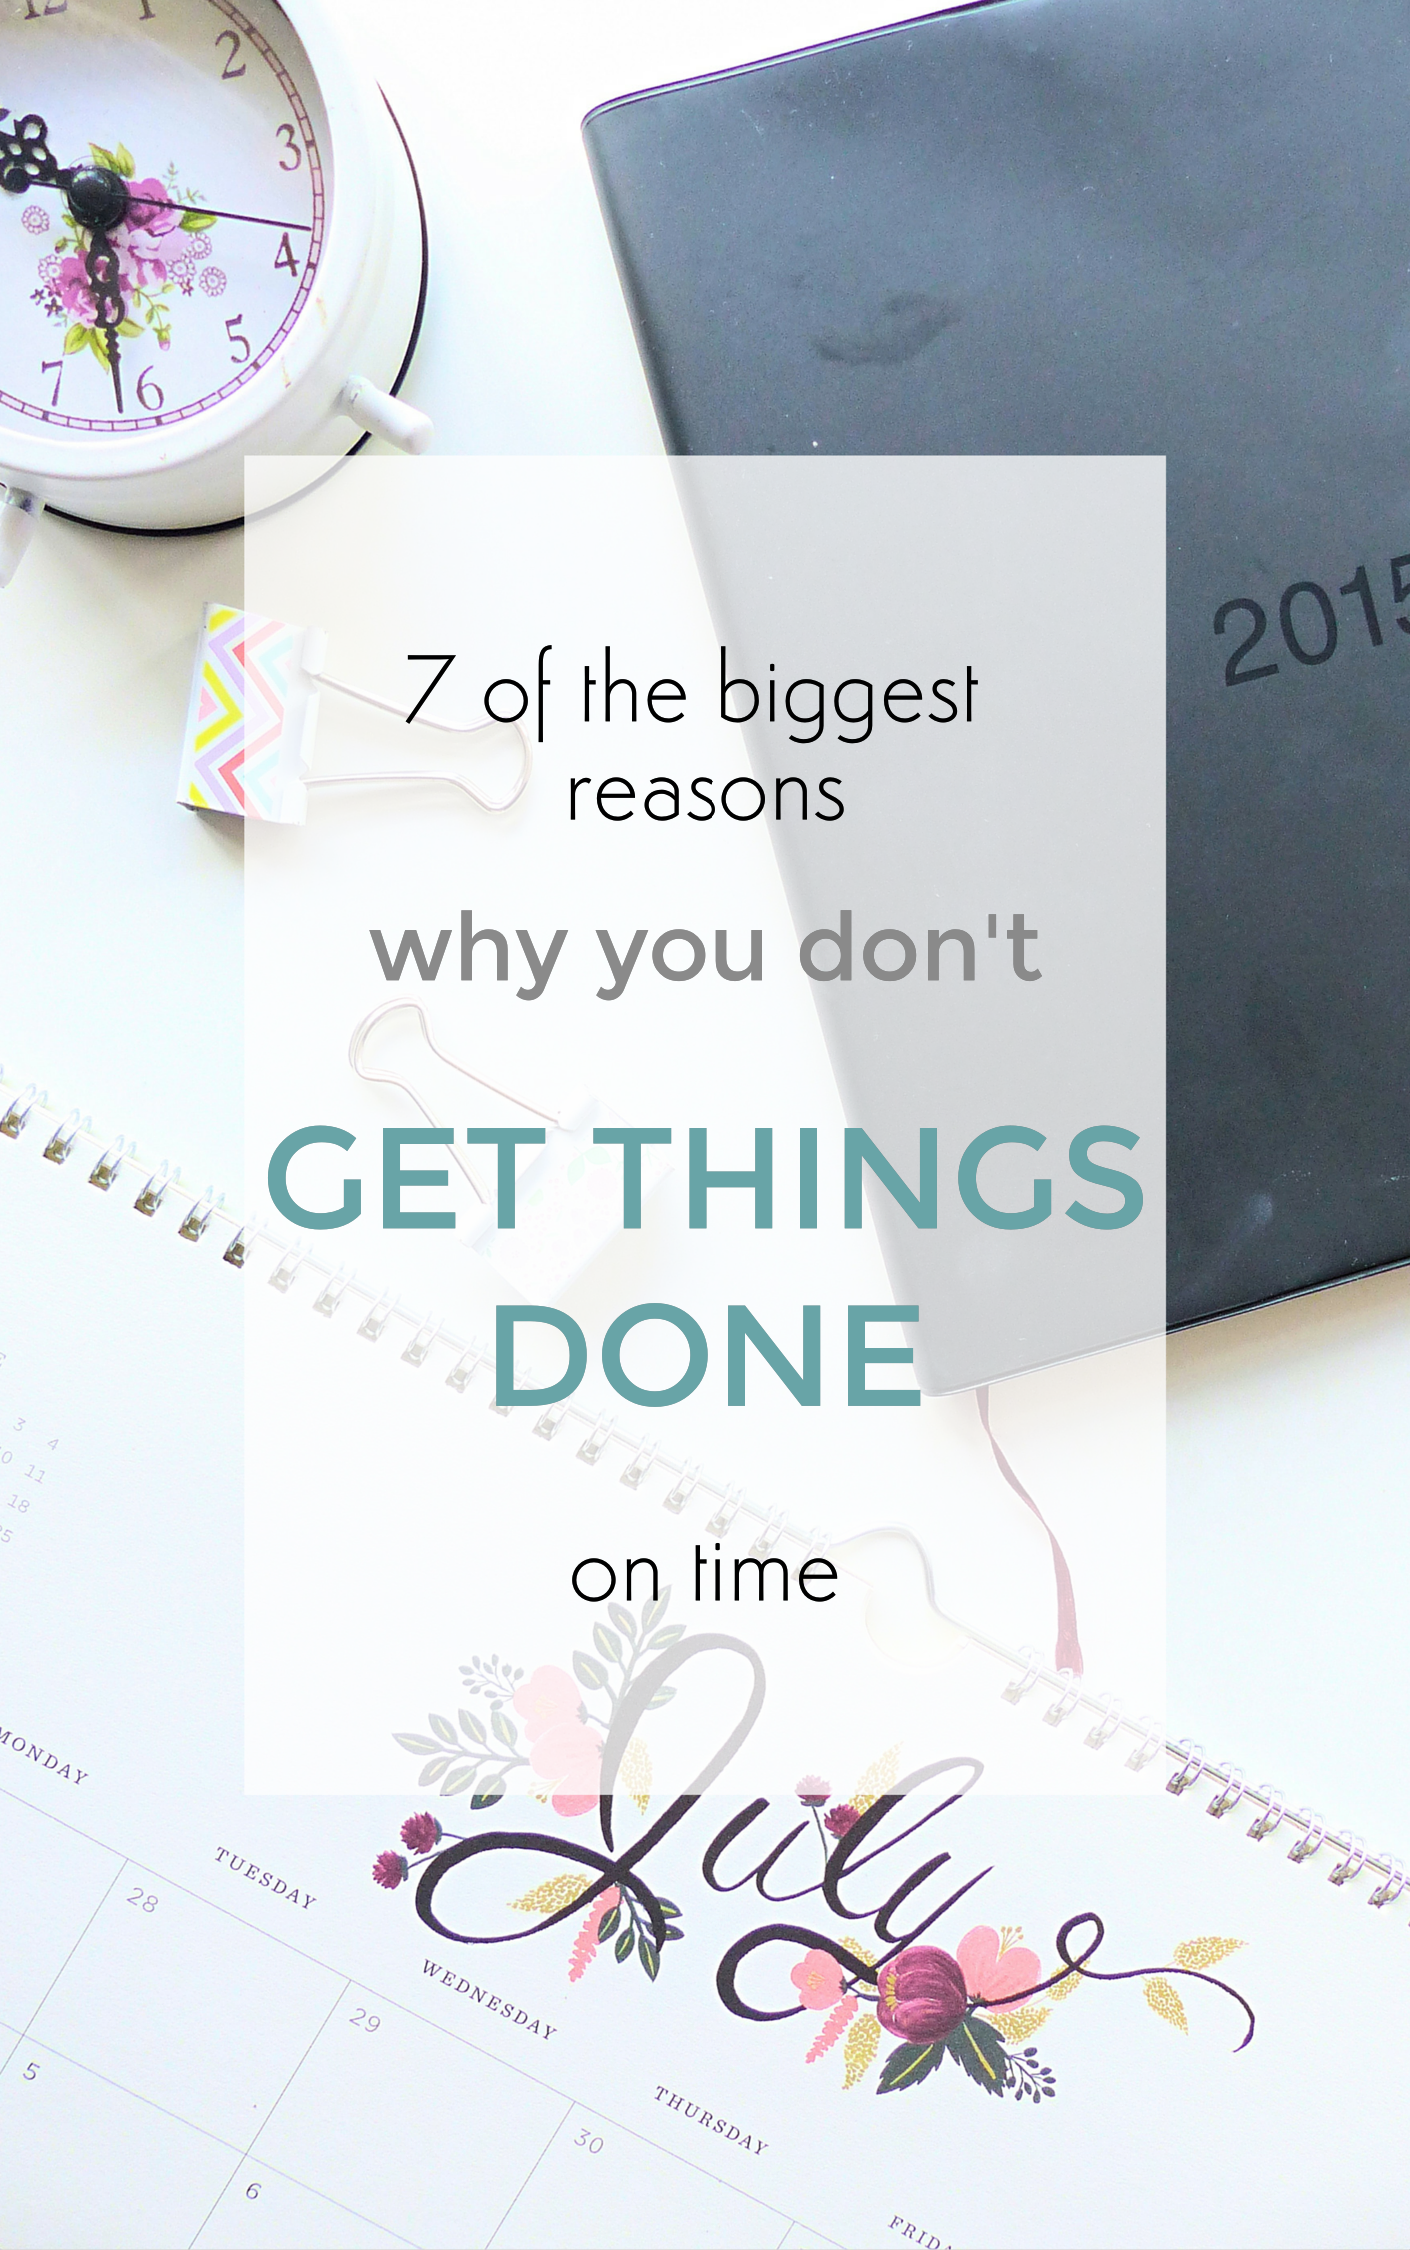 7 of the biggest reasons why you don't get things done on time